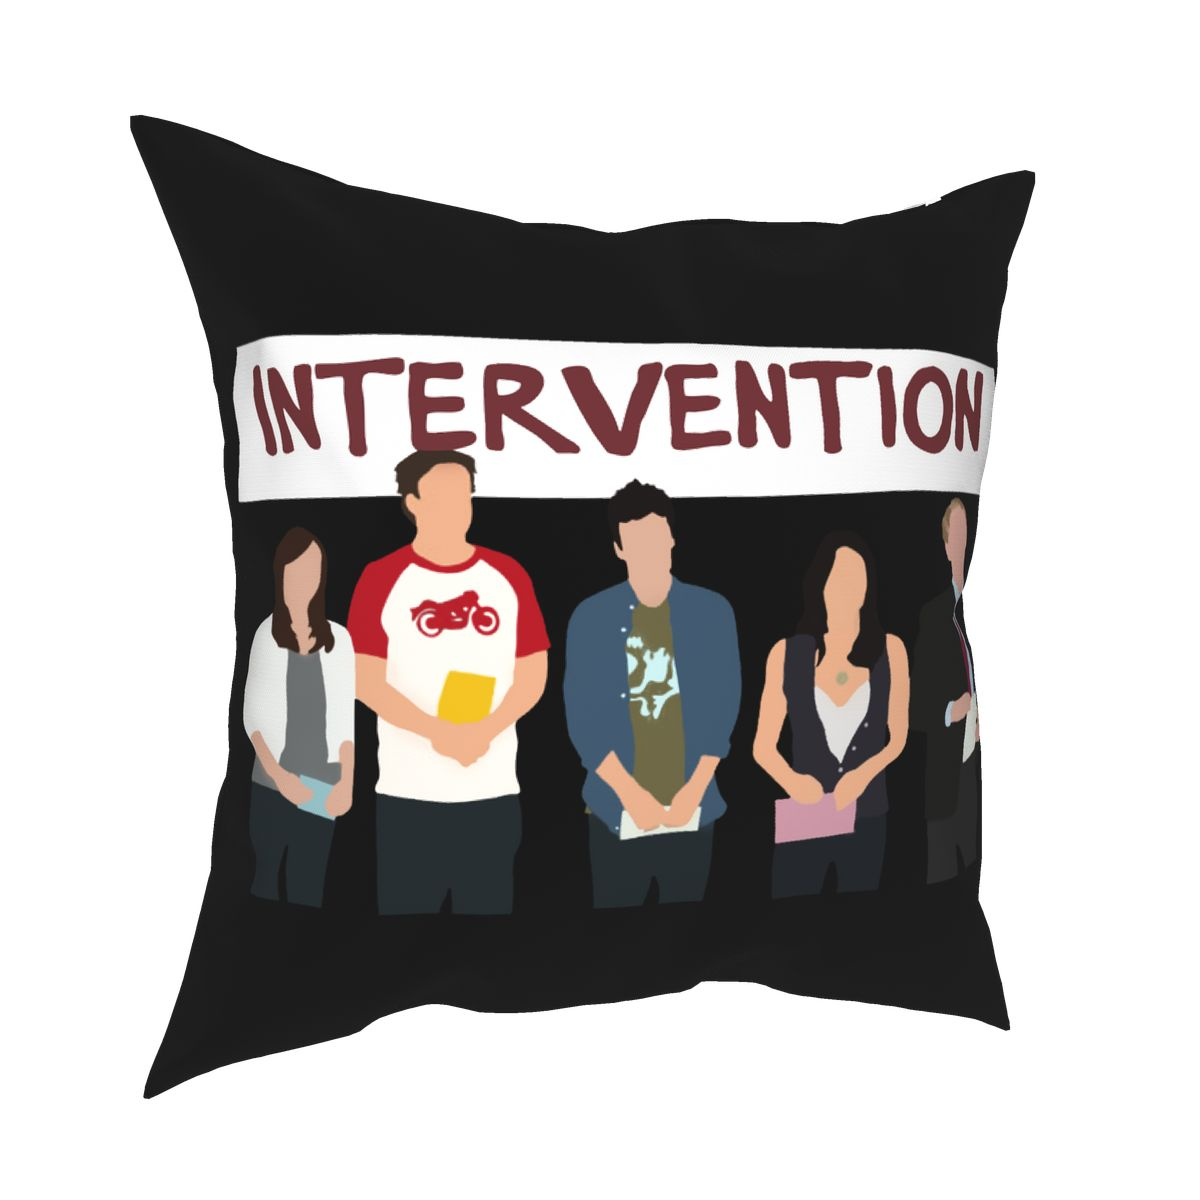 Intervention How I Met Your Mother Pillow Cover Home Decorative Tv Show Cushions Throw Pillow for Living Room Polyester